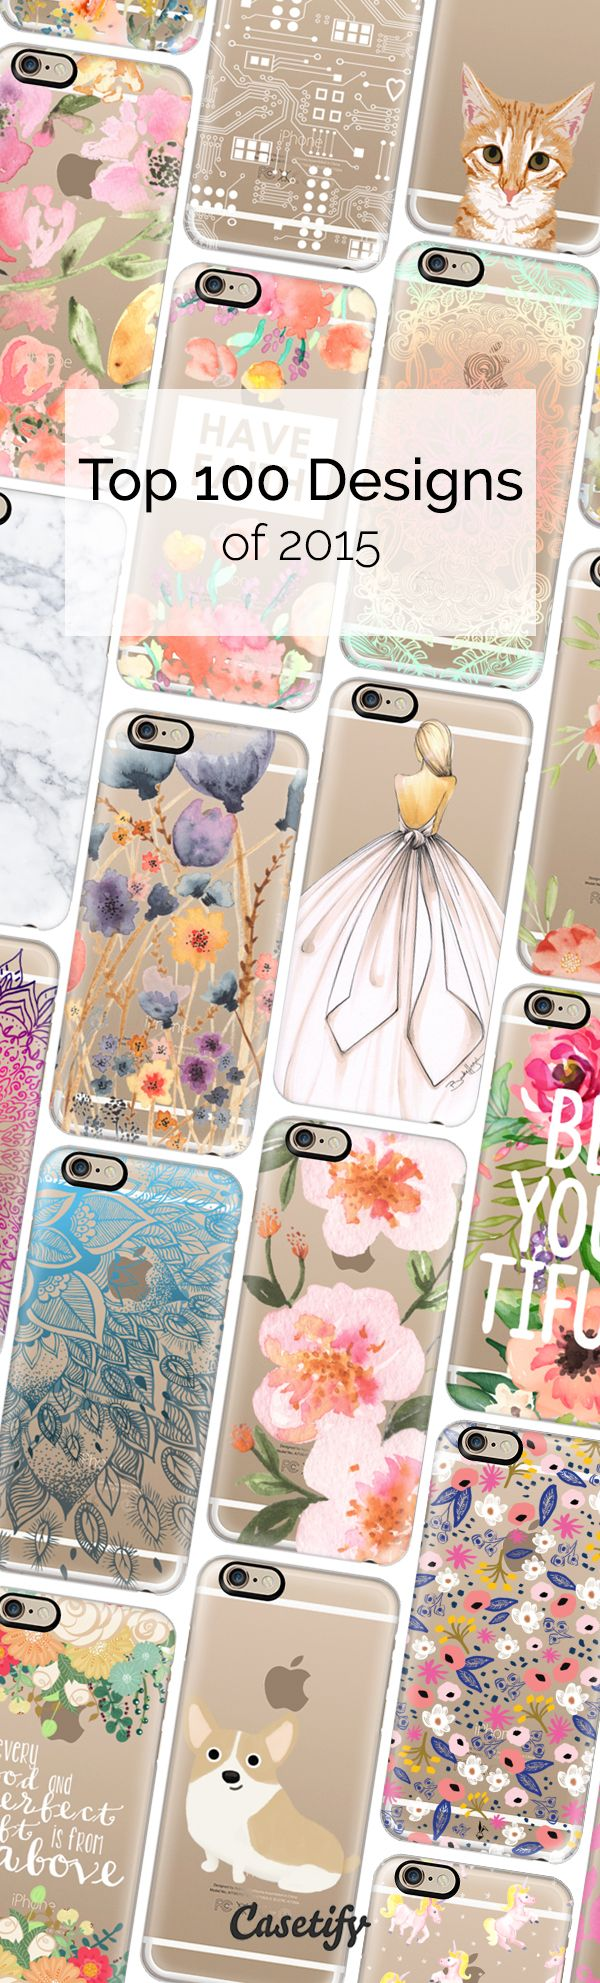 We are so over 2015. Here is a wrap of our Top 100 Designs this year! Shop them all here: http://www.casetify.com/collections/top_100_designs#/